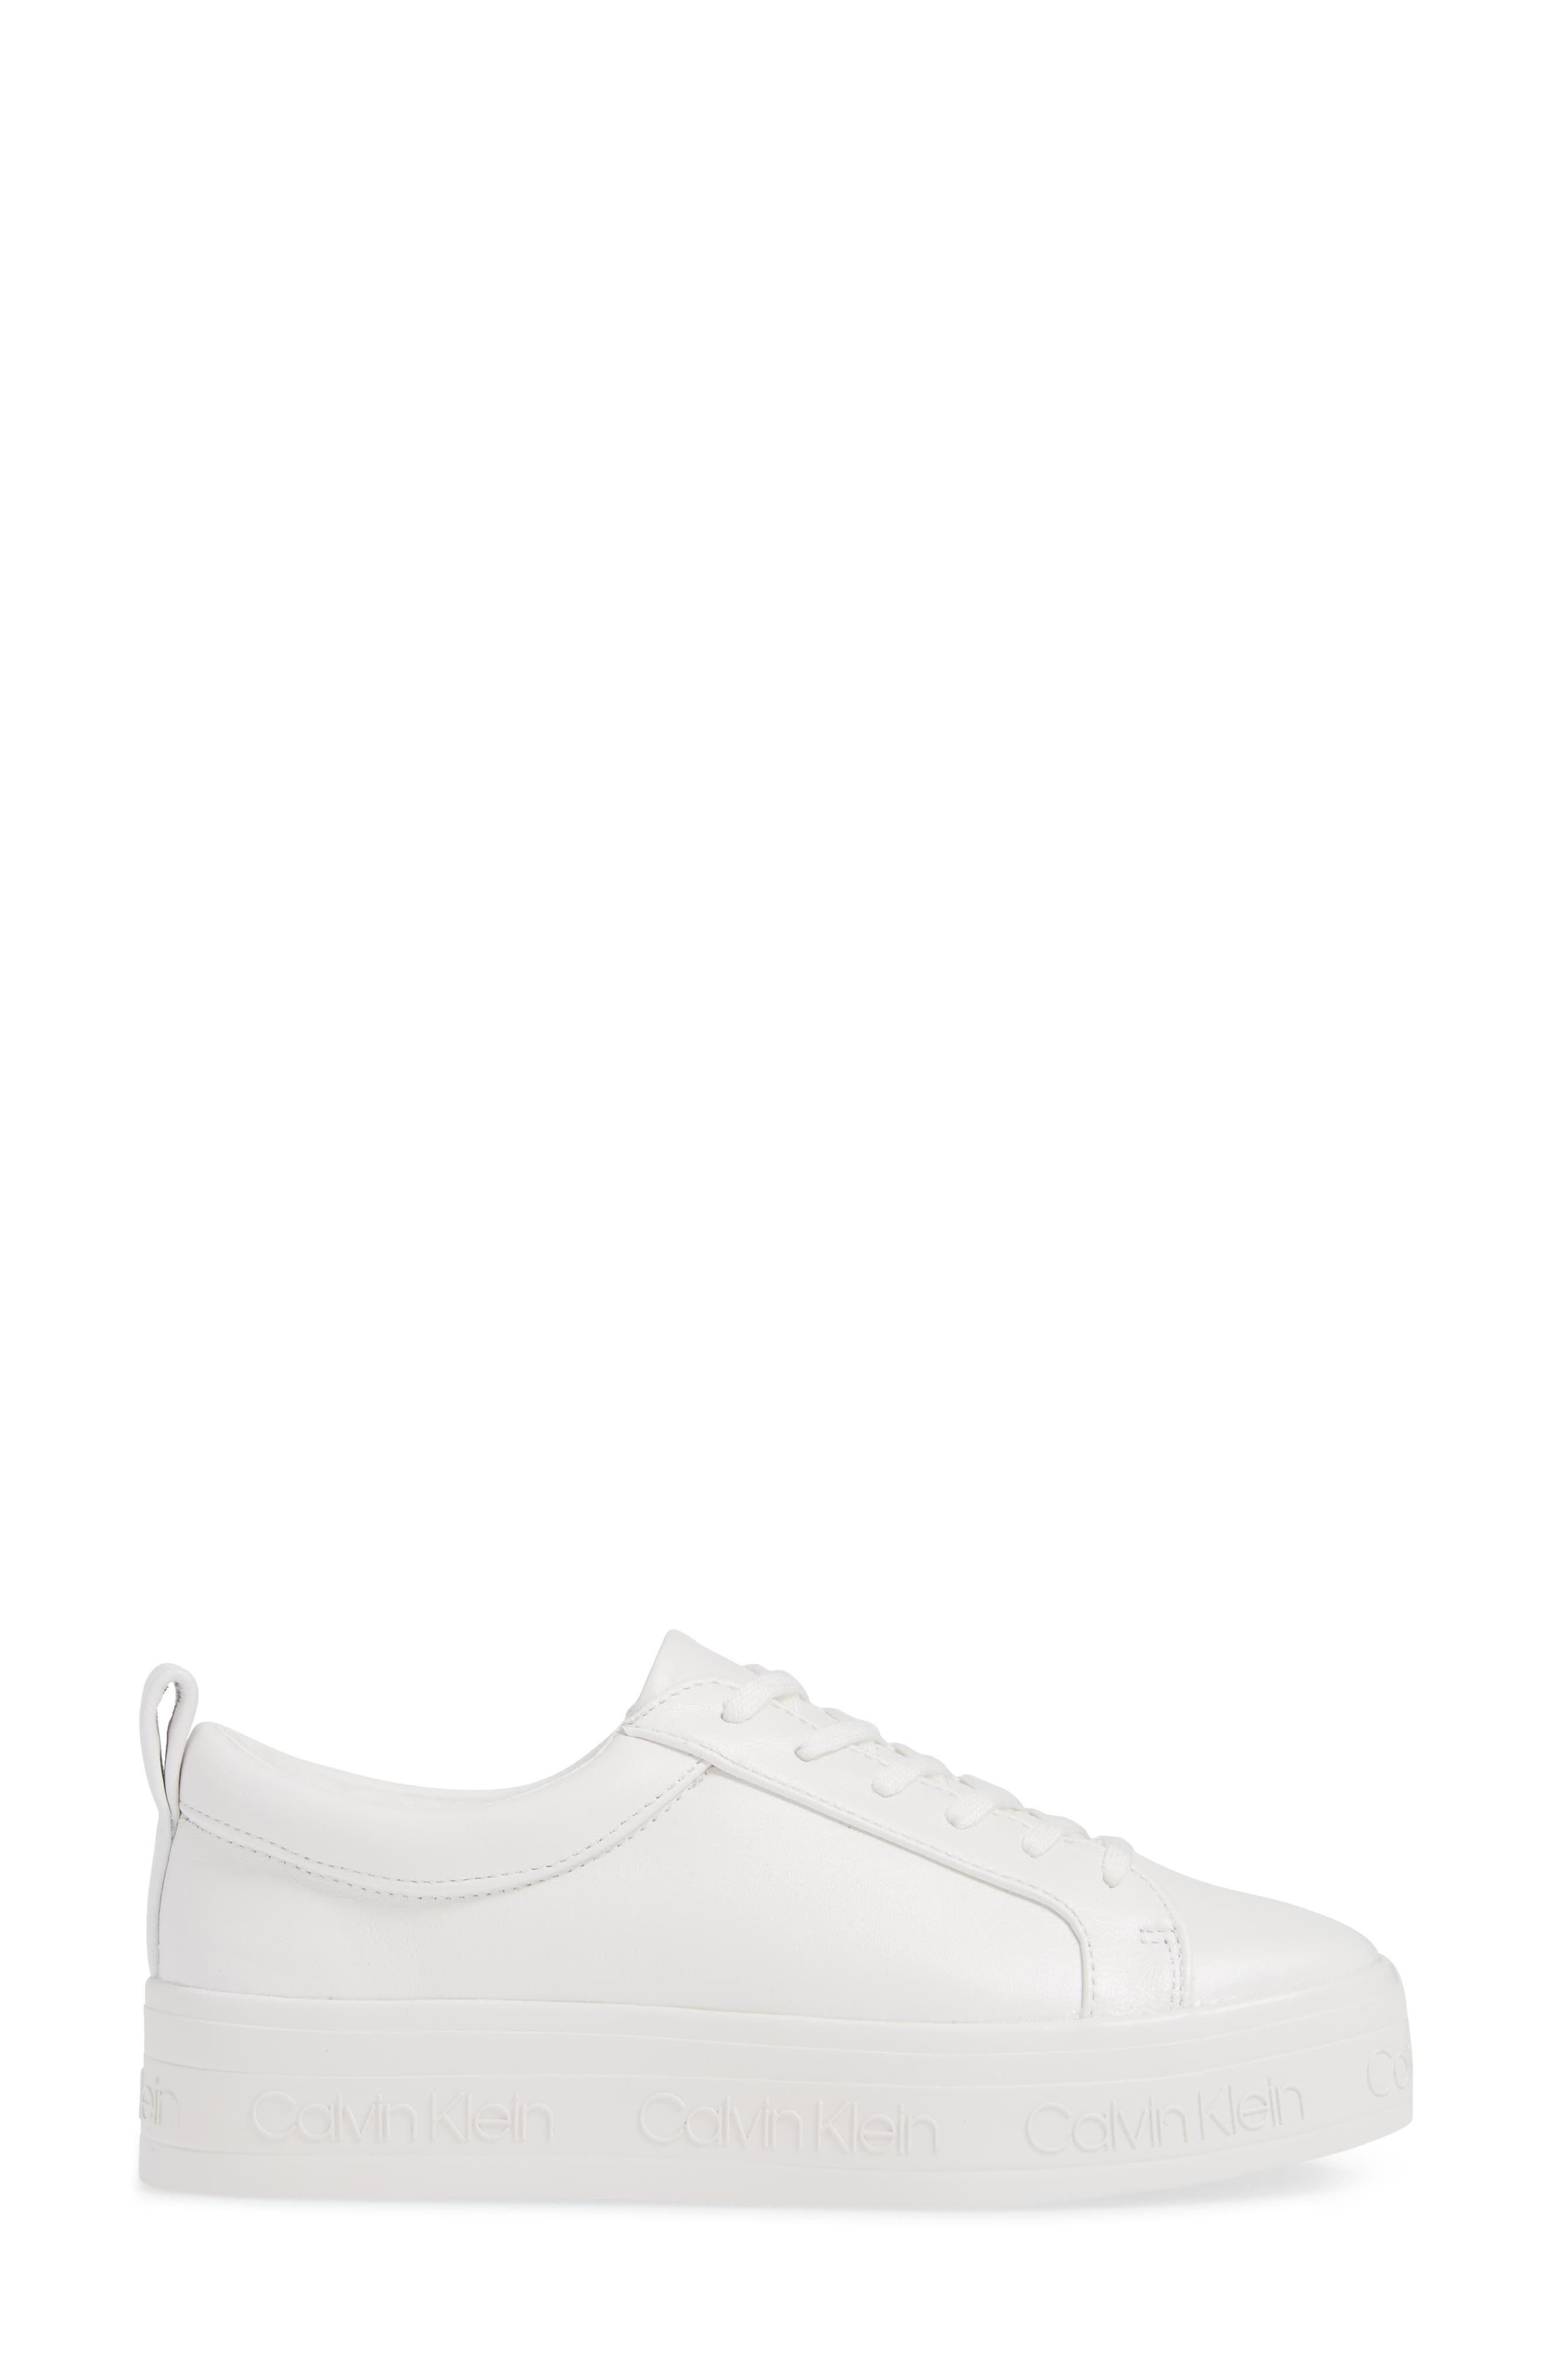 CALVIN KLEIN, Jaelee Sneaker, Alternate thumbnail 3, color, WHITE NAPPA LEATHER